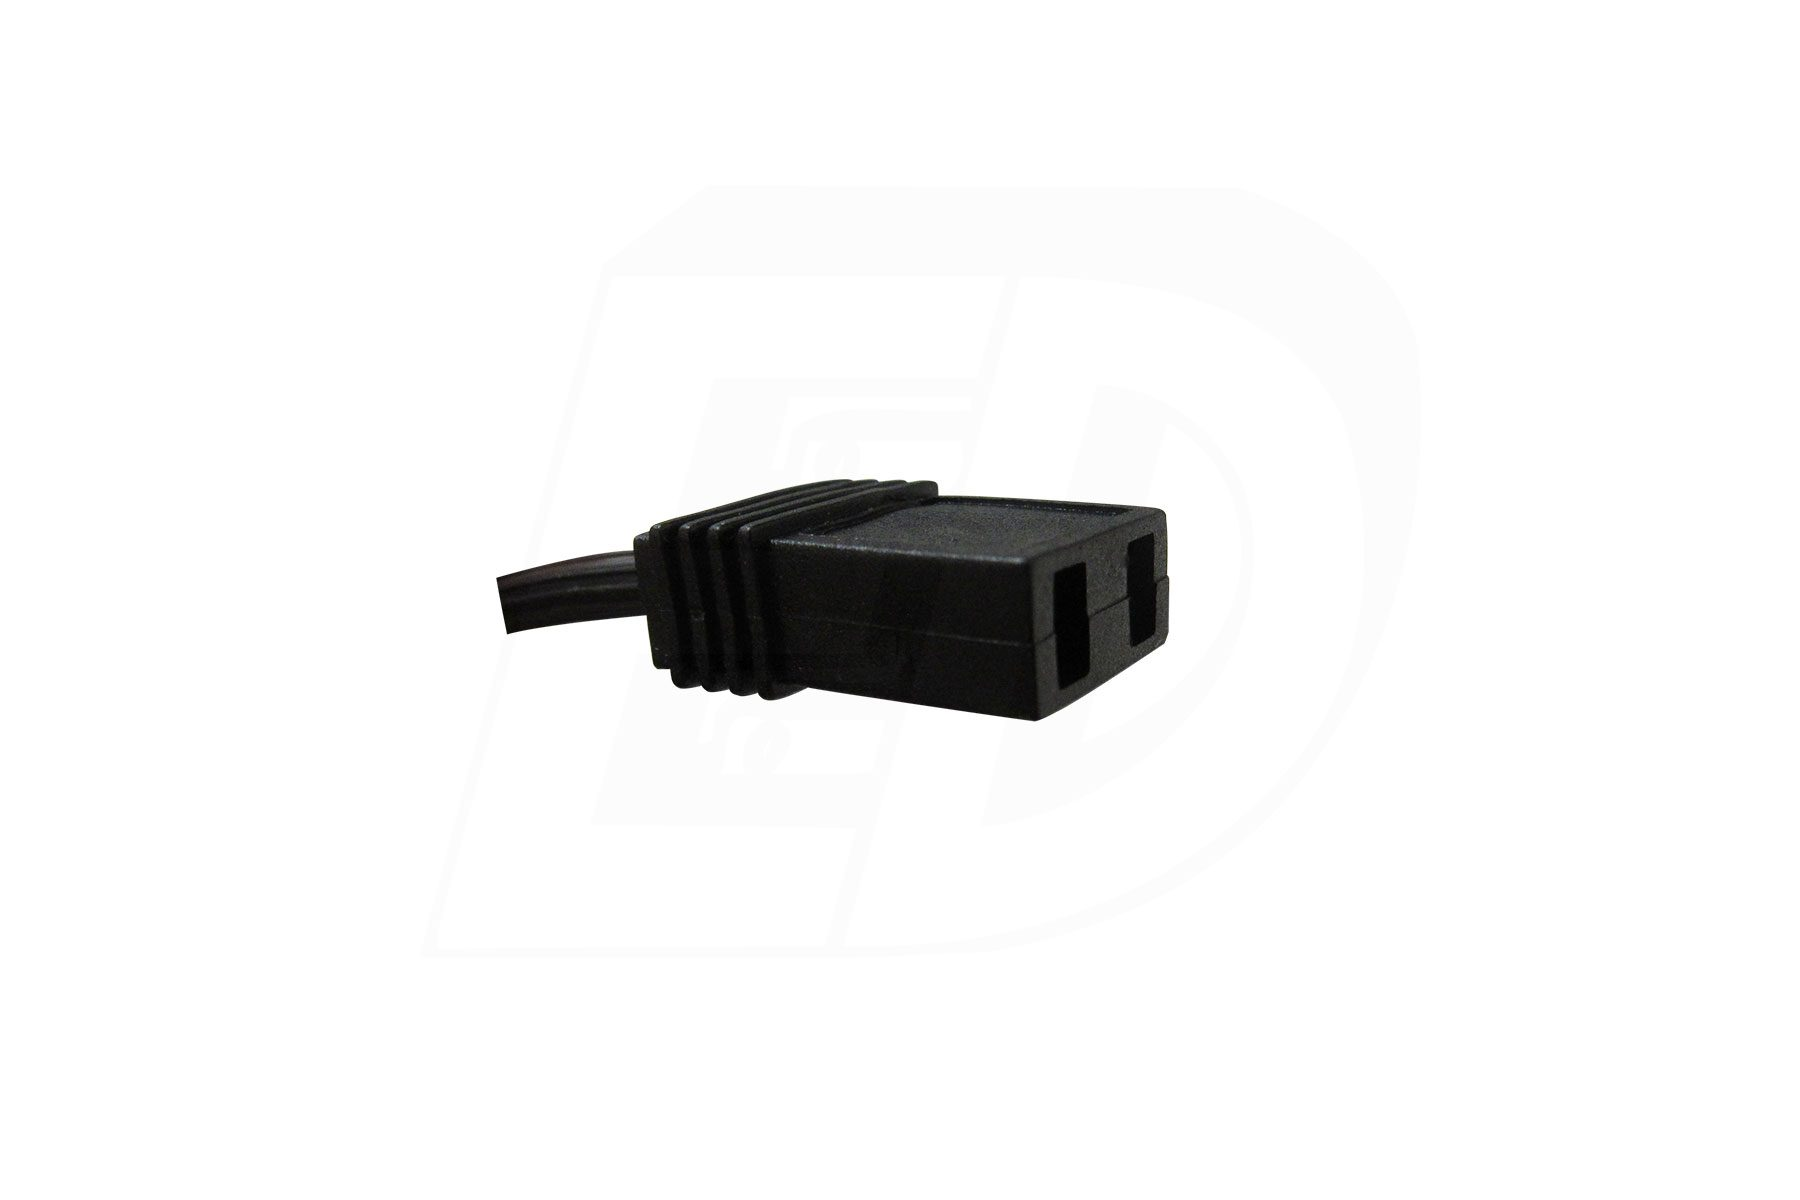 2 Ft. Cord for Axial Fan